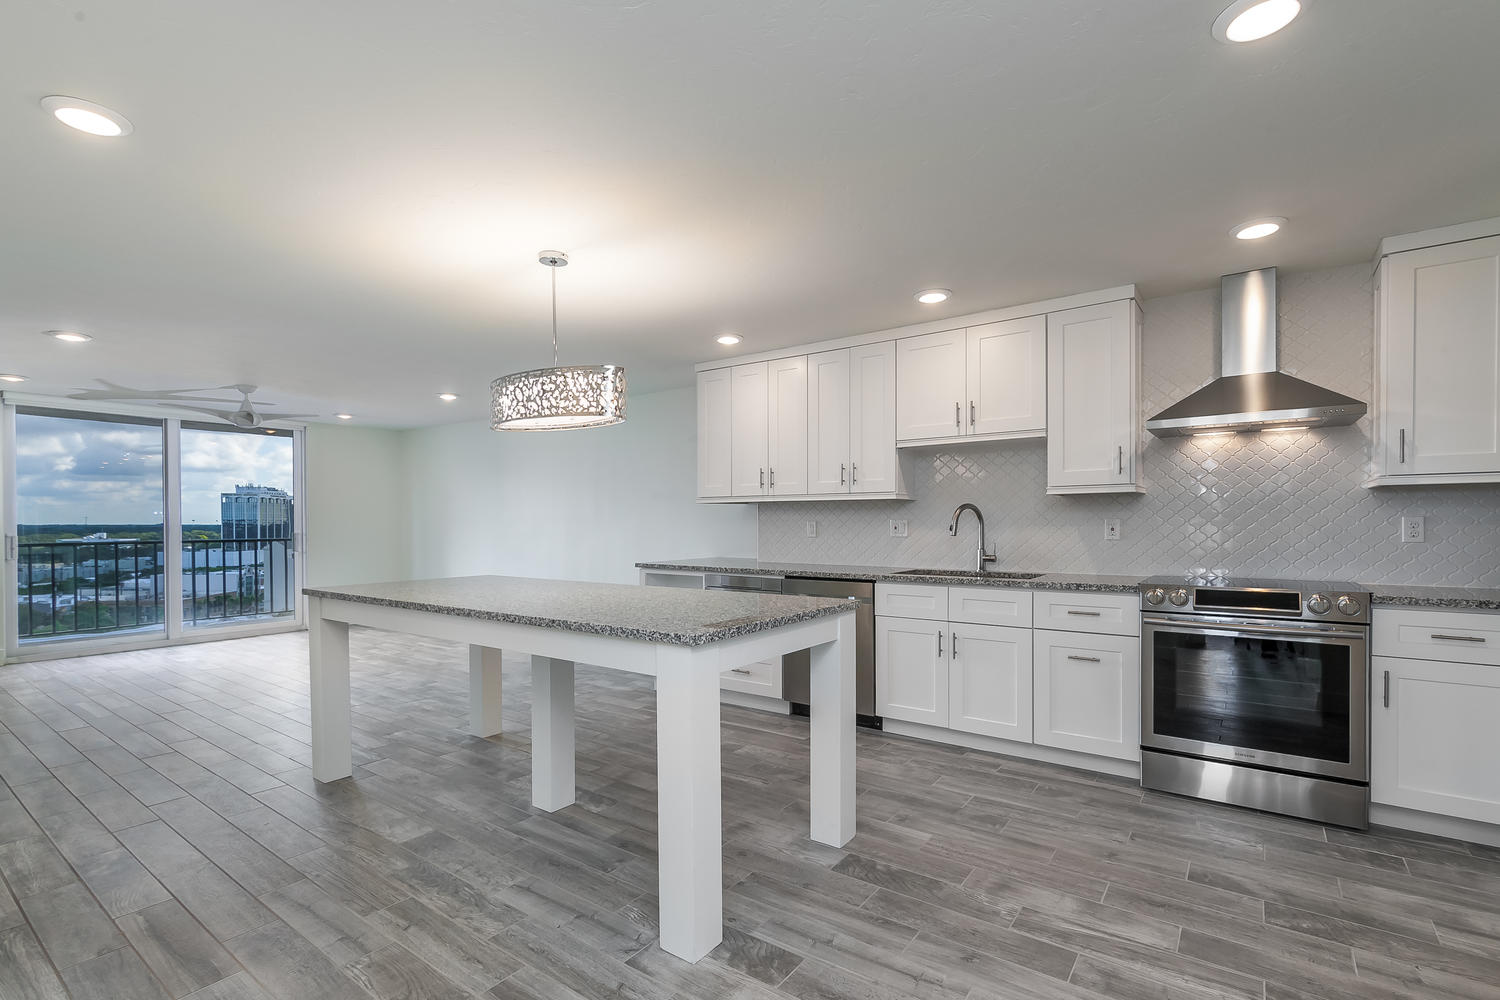 kitchen2-interior-design-dolphin-towers-cityside-after